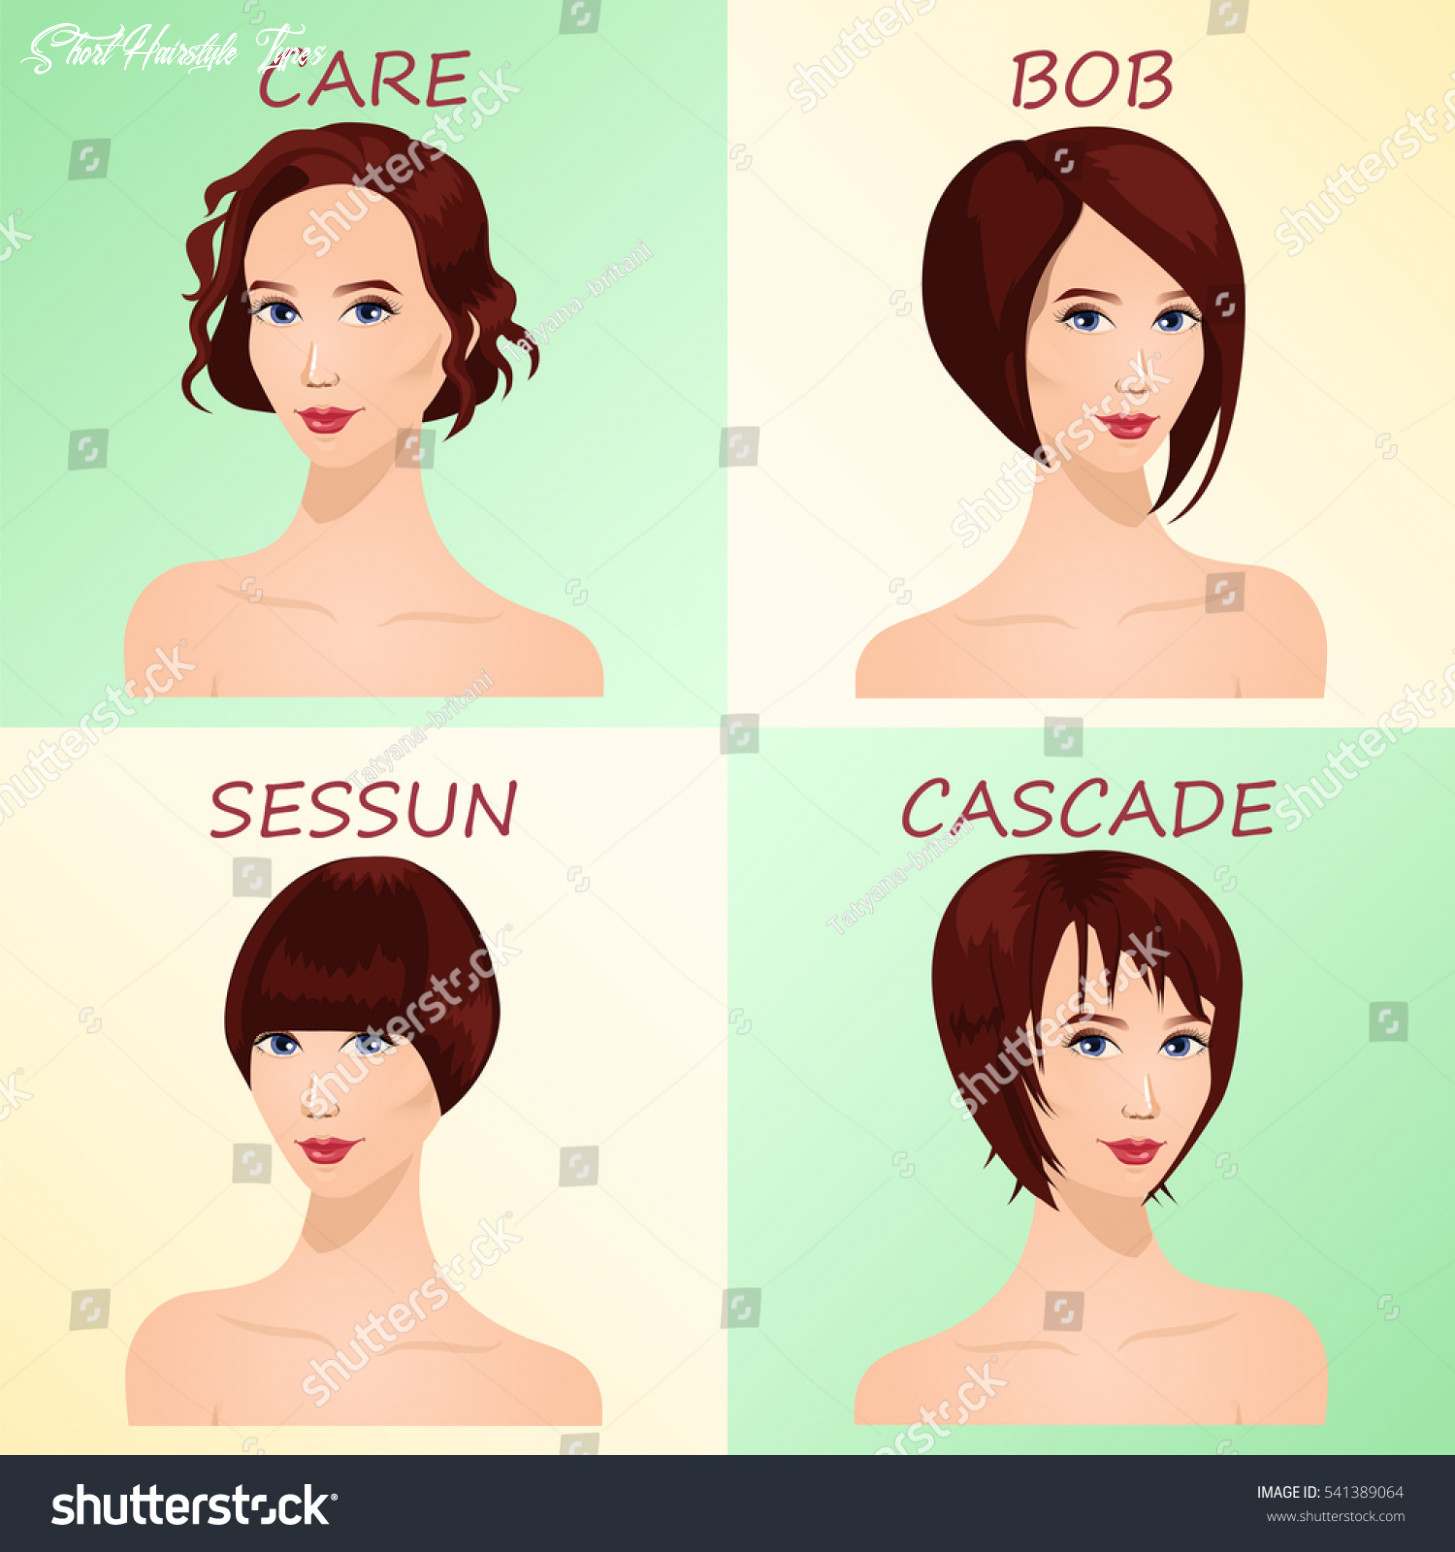 Four basic types short haircuts women stock vector (royalty free